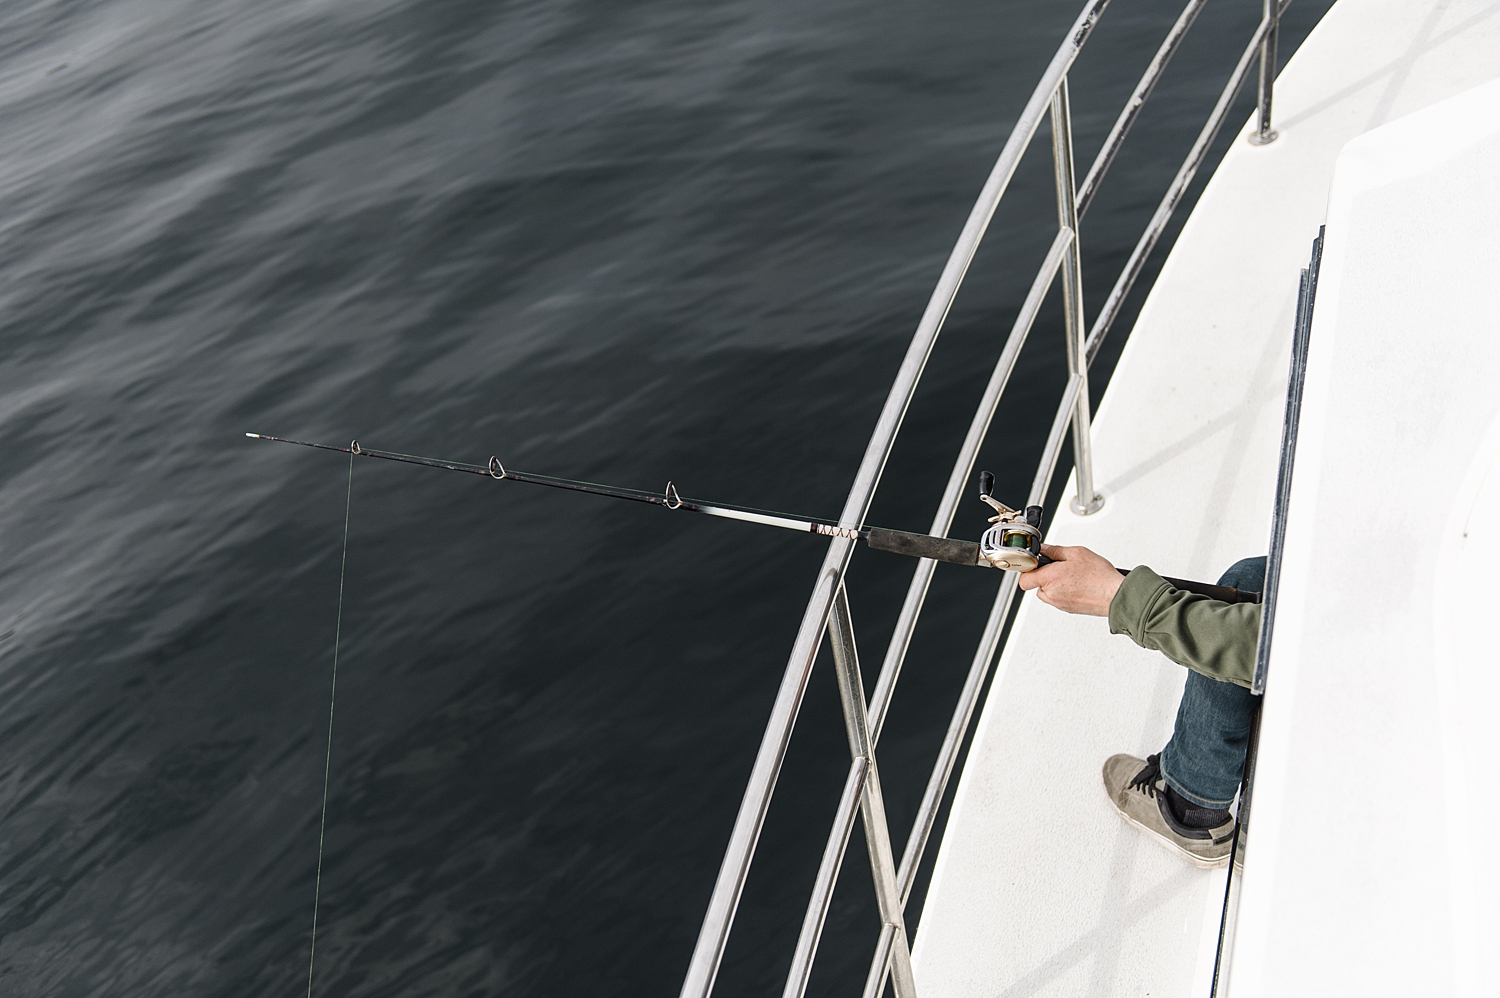 Fishing-161_web.jpg